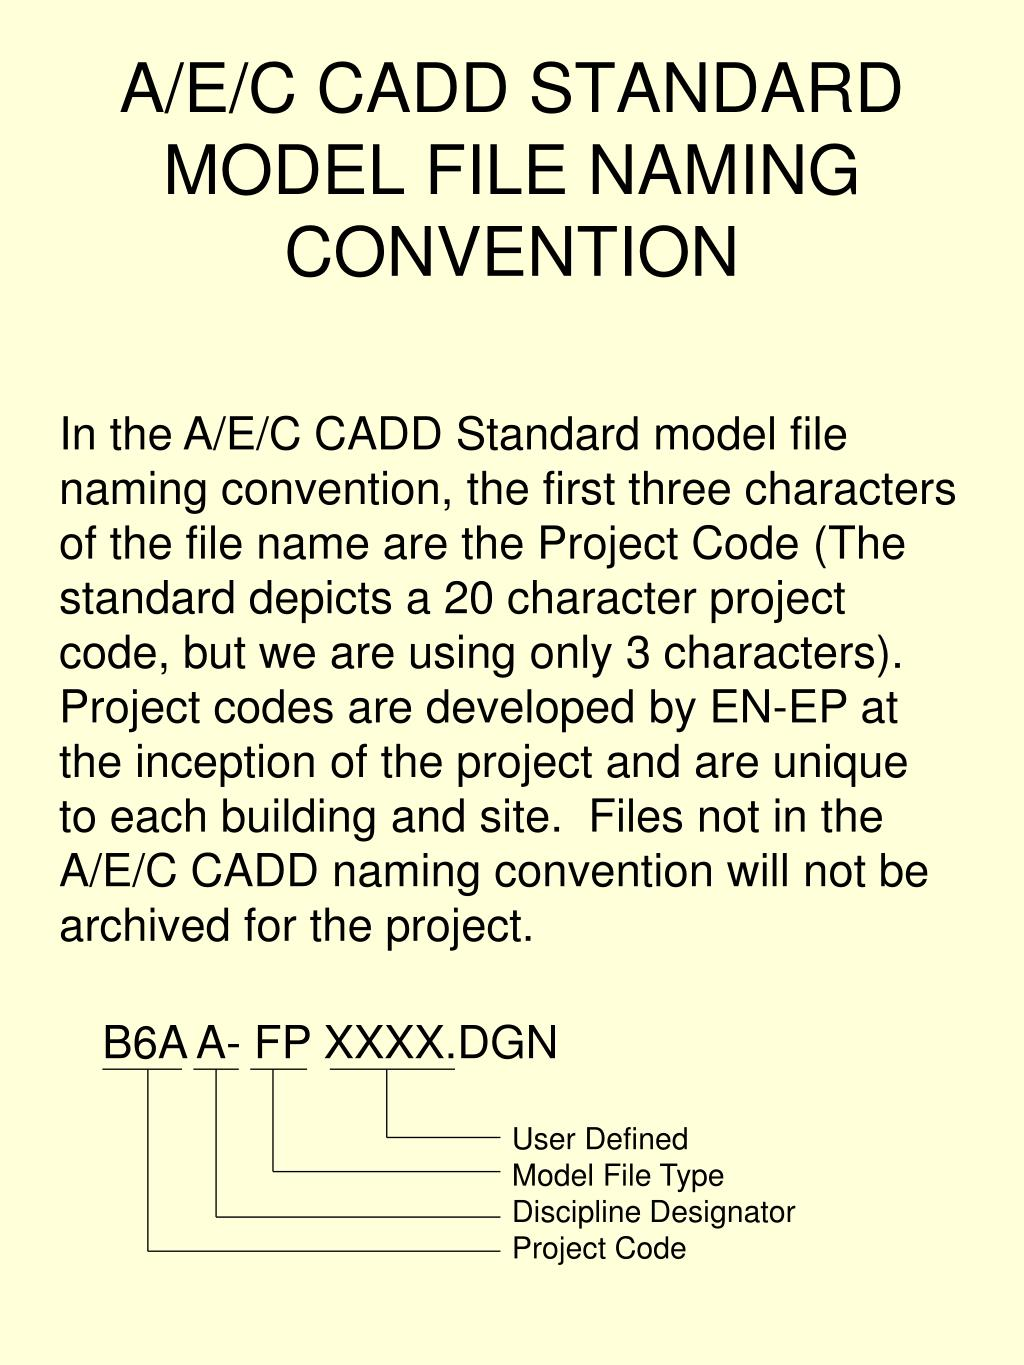 A/E/C CADD STANDARD MODEL FILE NAMING CONVENTION